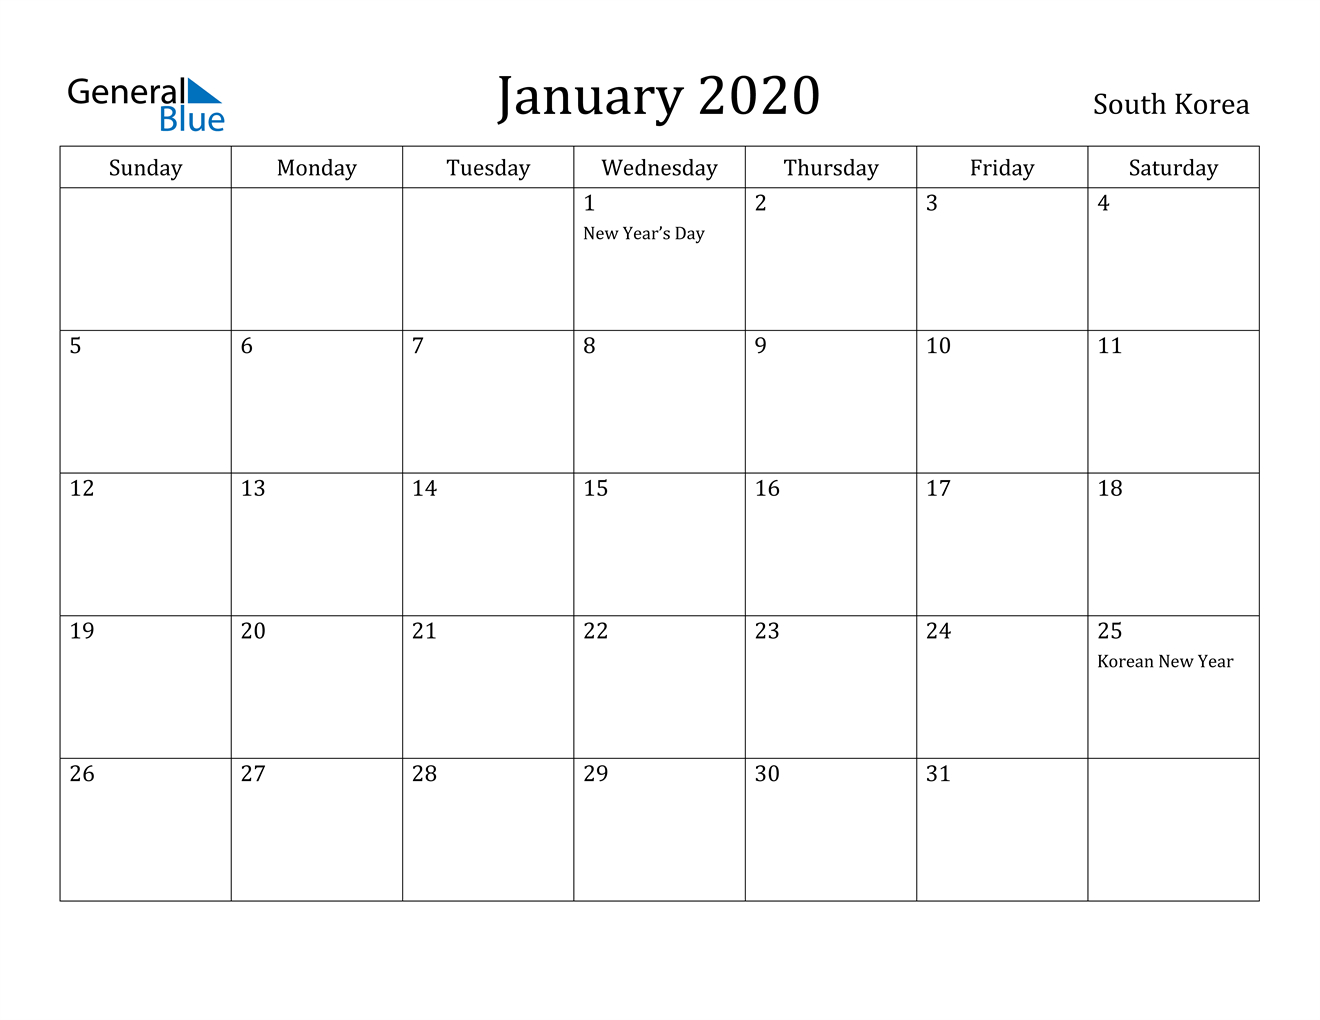 January 2020 Calendar - South Korea